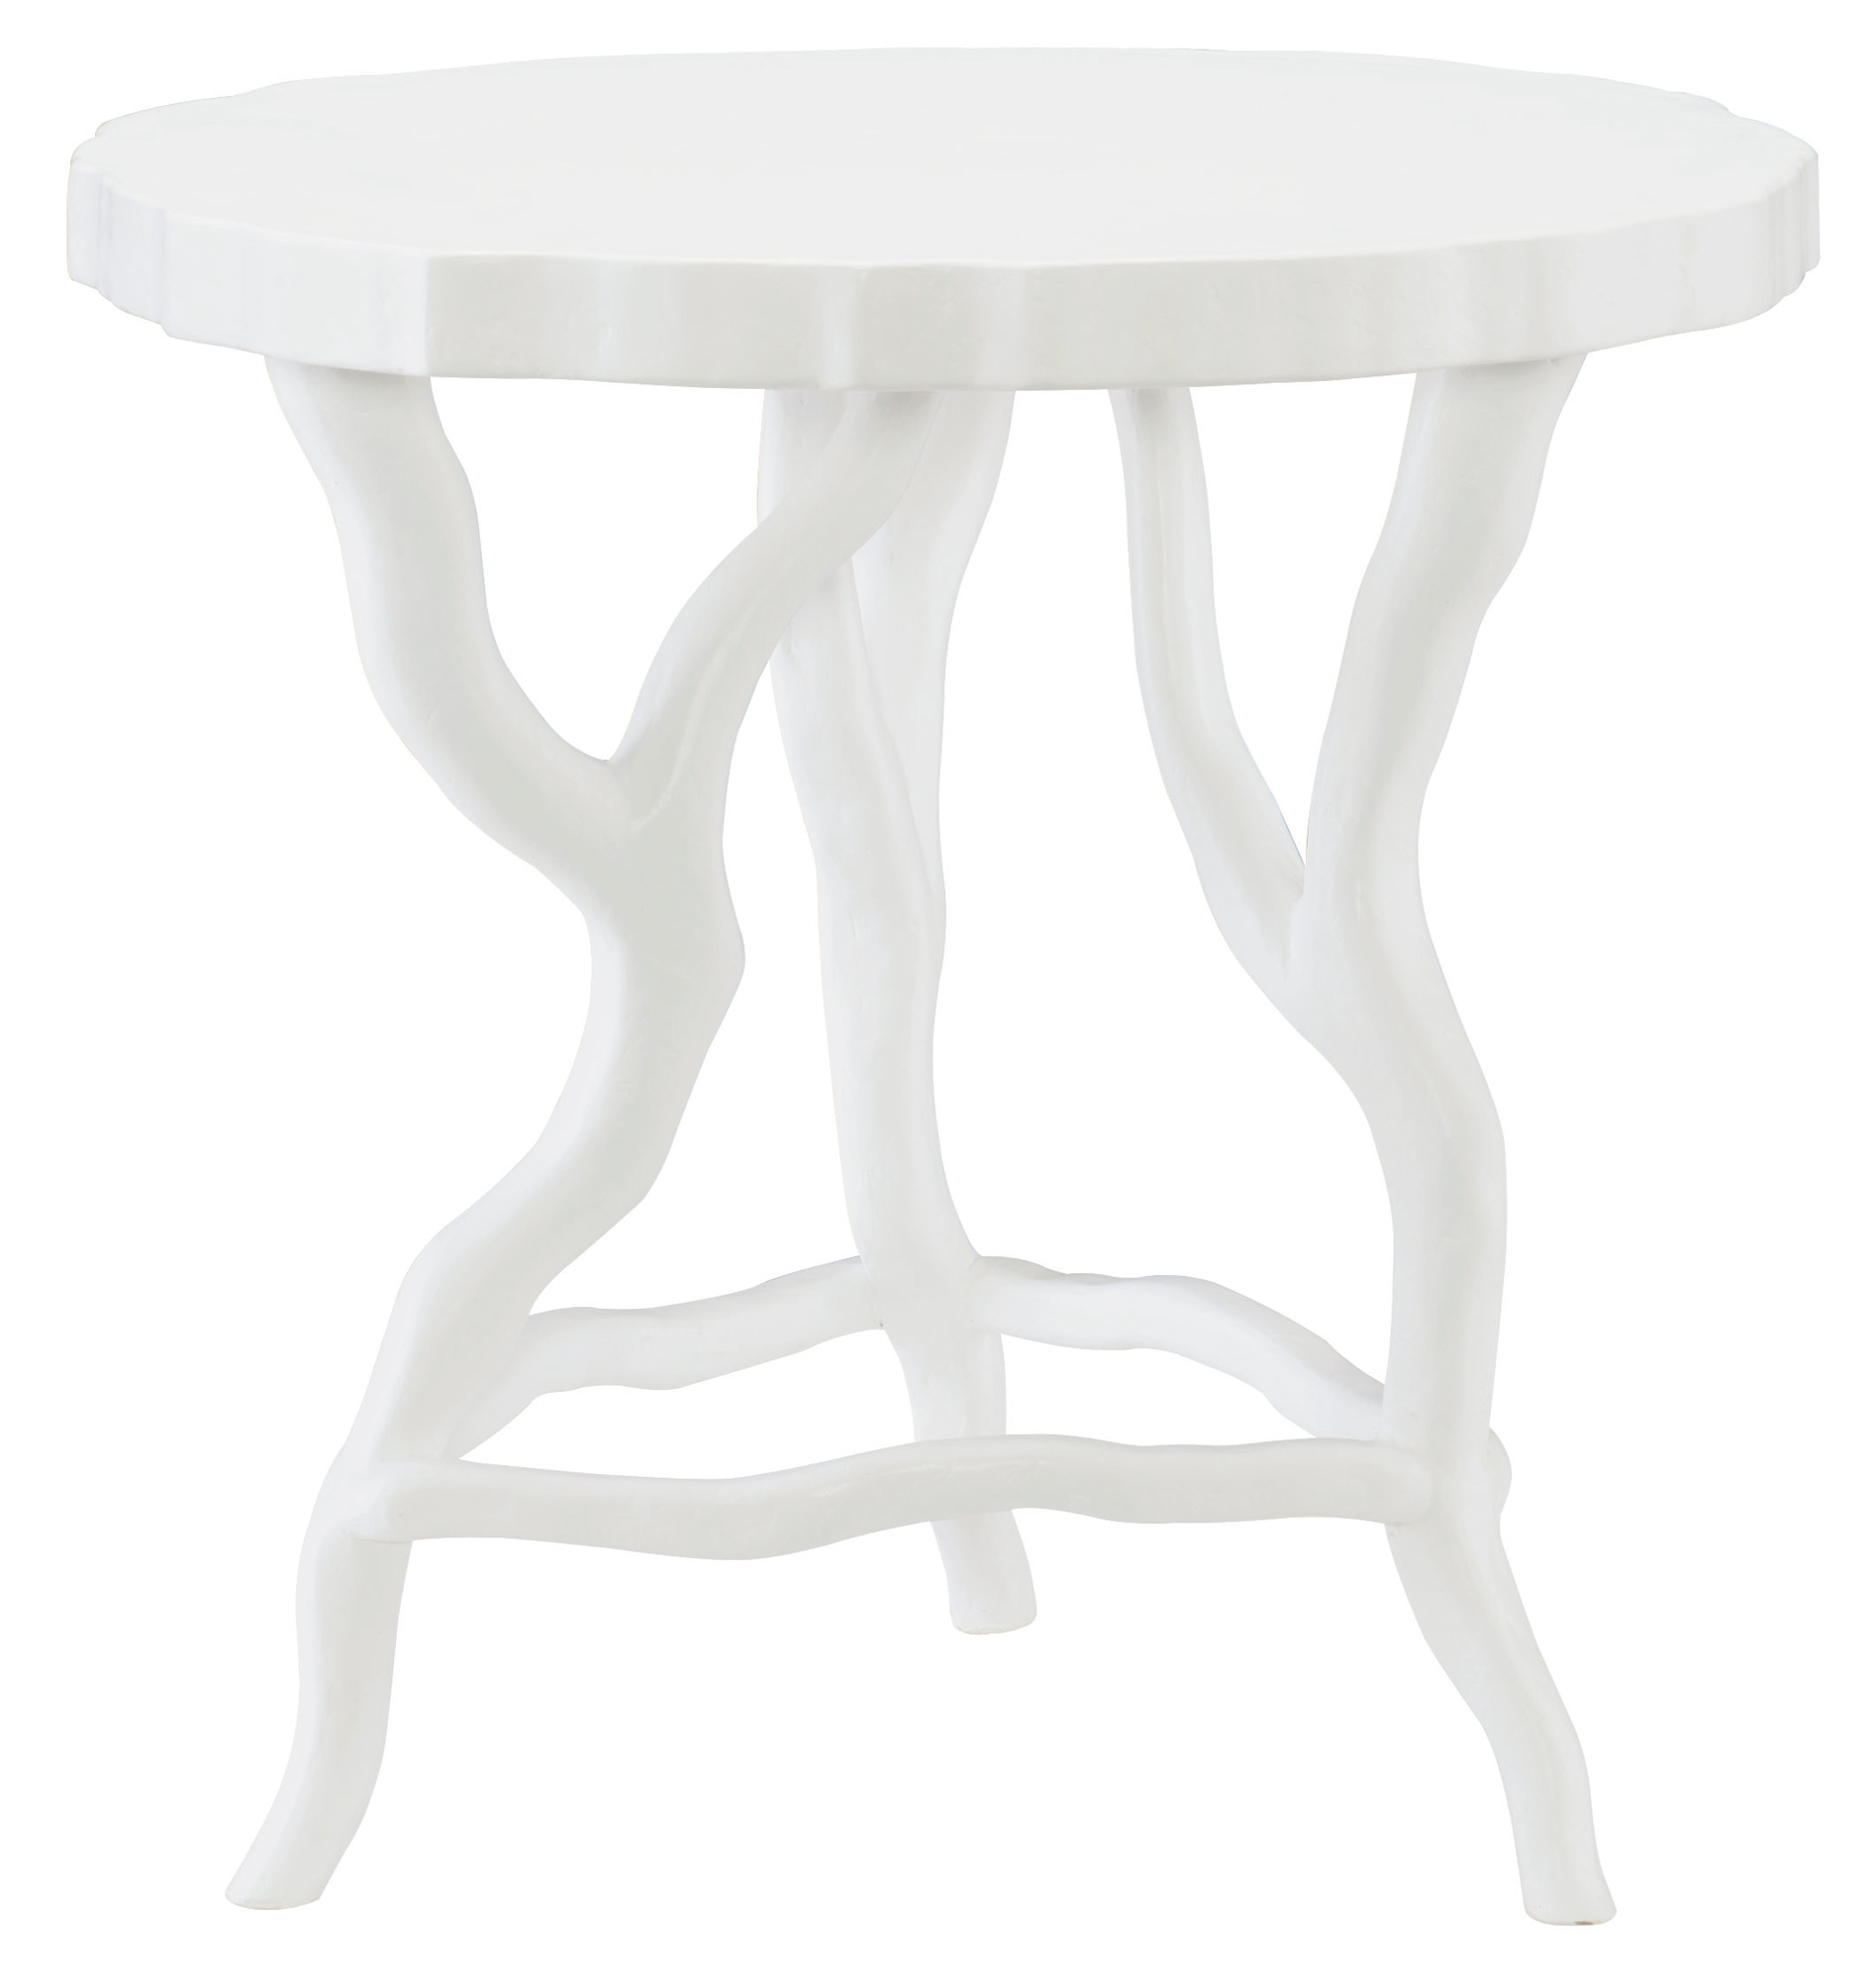 chair side end table with cup holder decorating chairs for wedding reception round chairside bernhardt hospitality